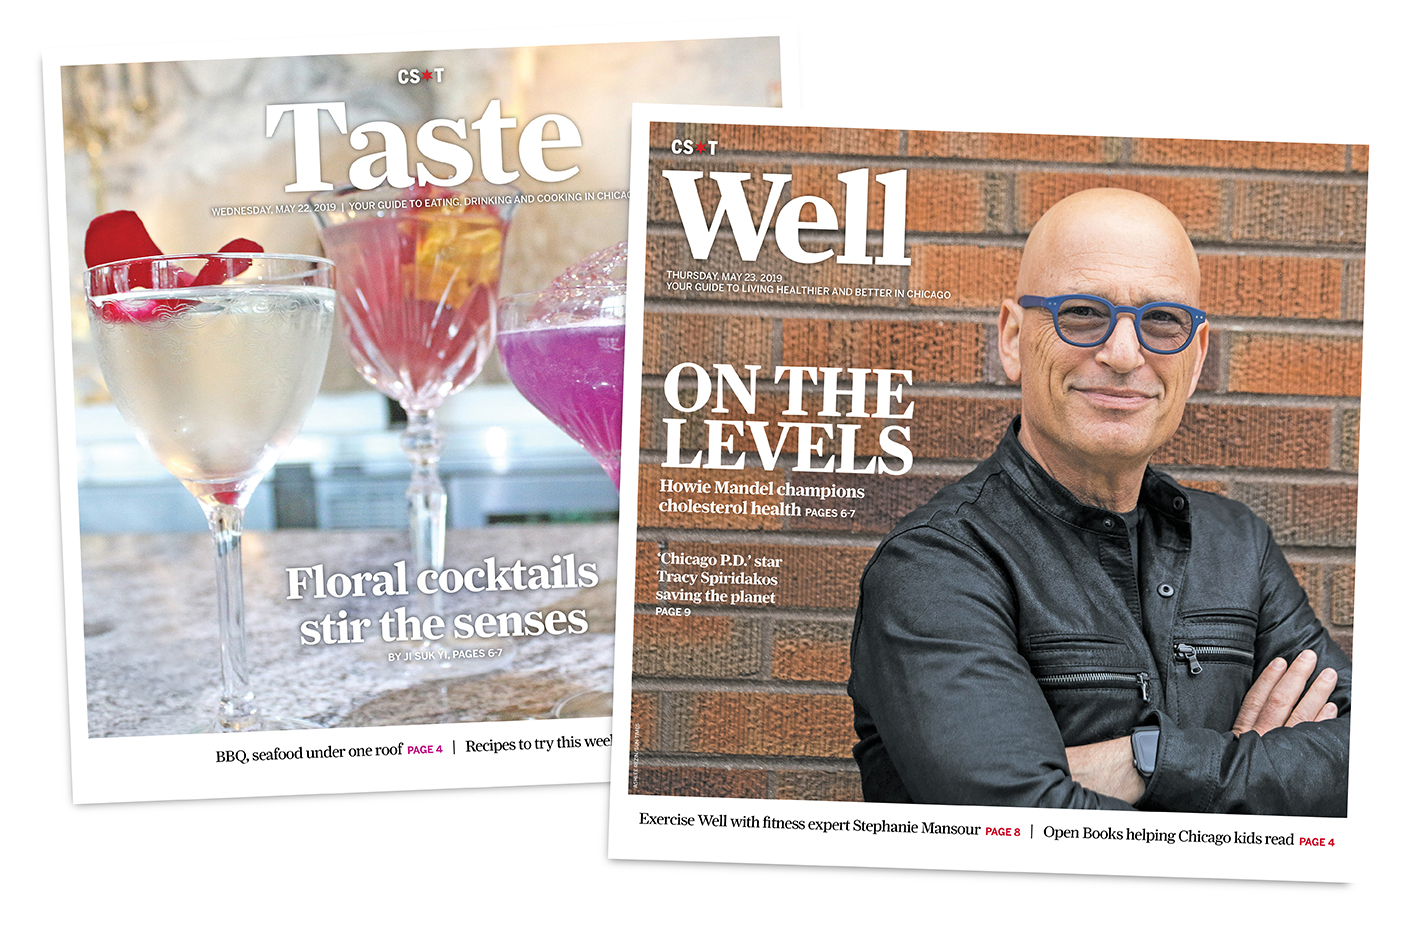 Photos of the revamped Taste and Well sections that are debuting in the Sun-Times this week.